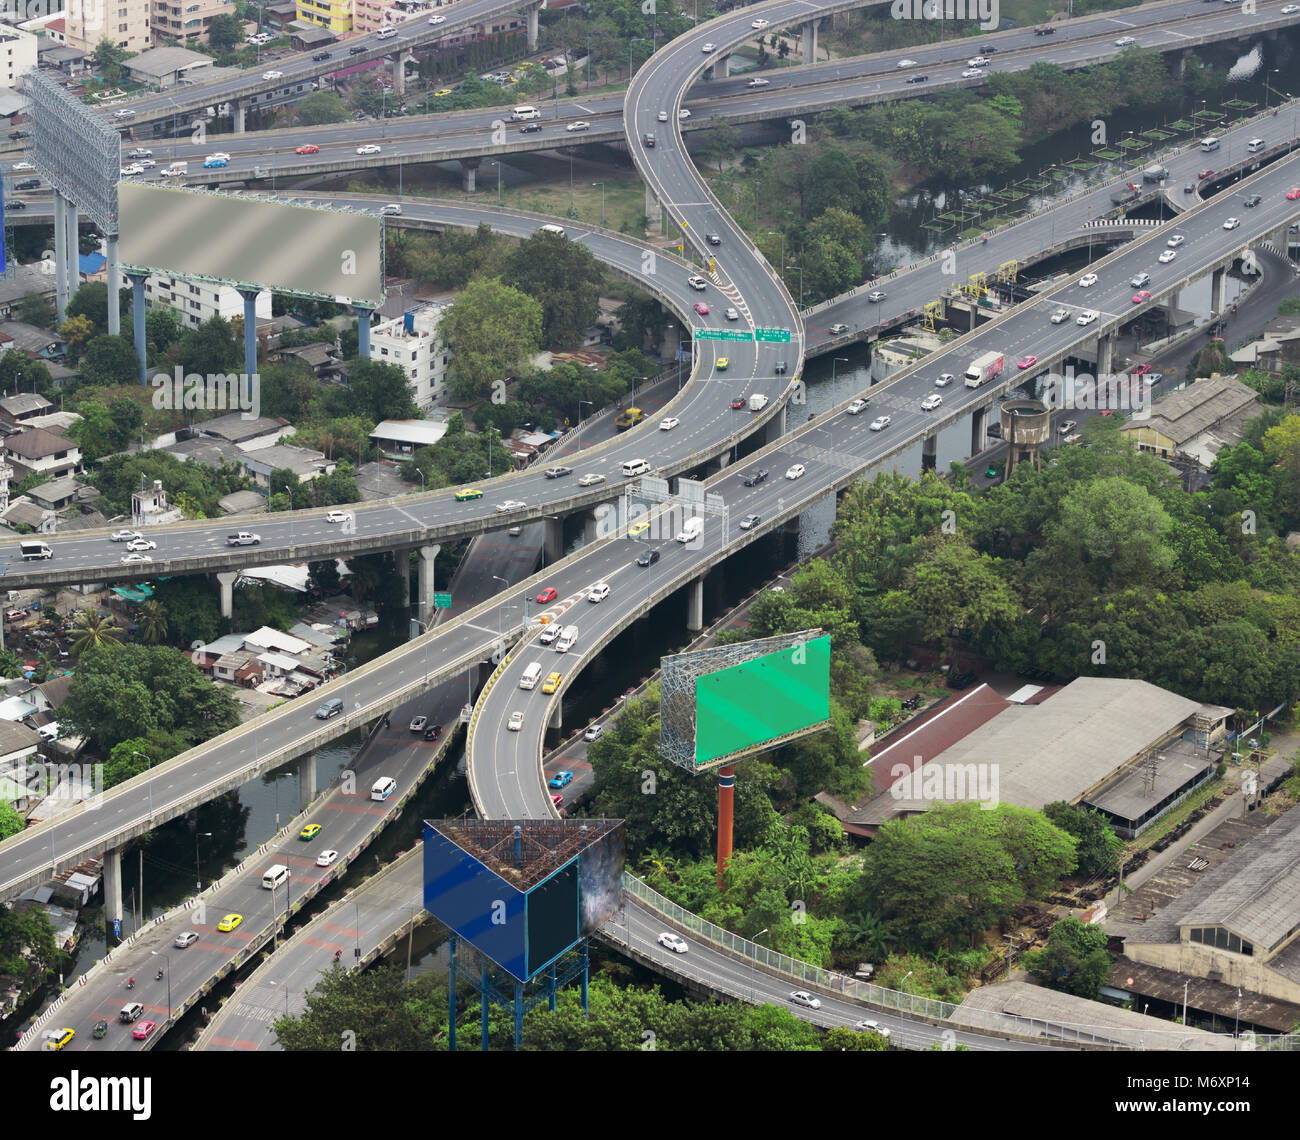 Asian city with overpasses and viaducts, view from the heights - Stock Image